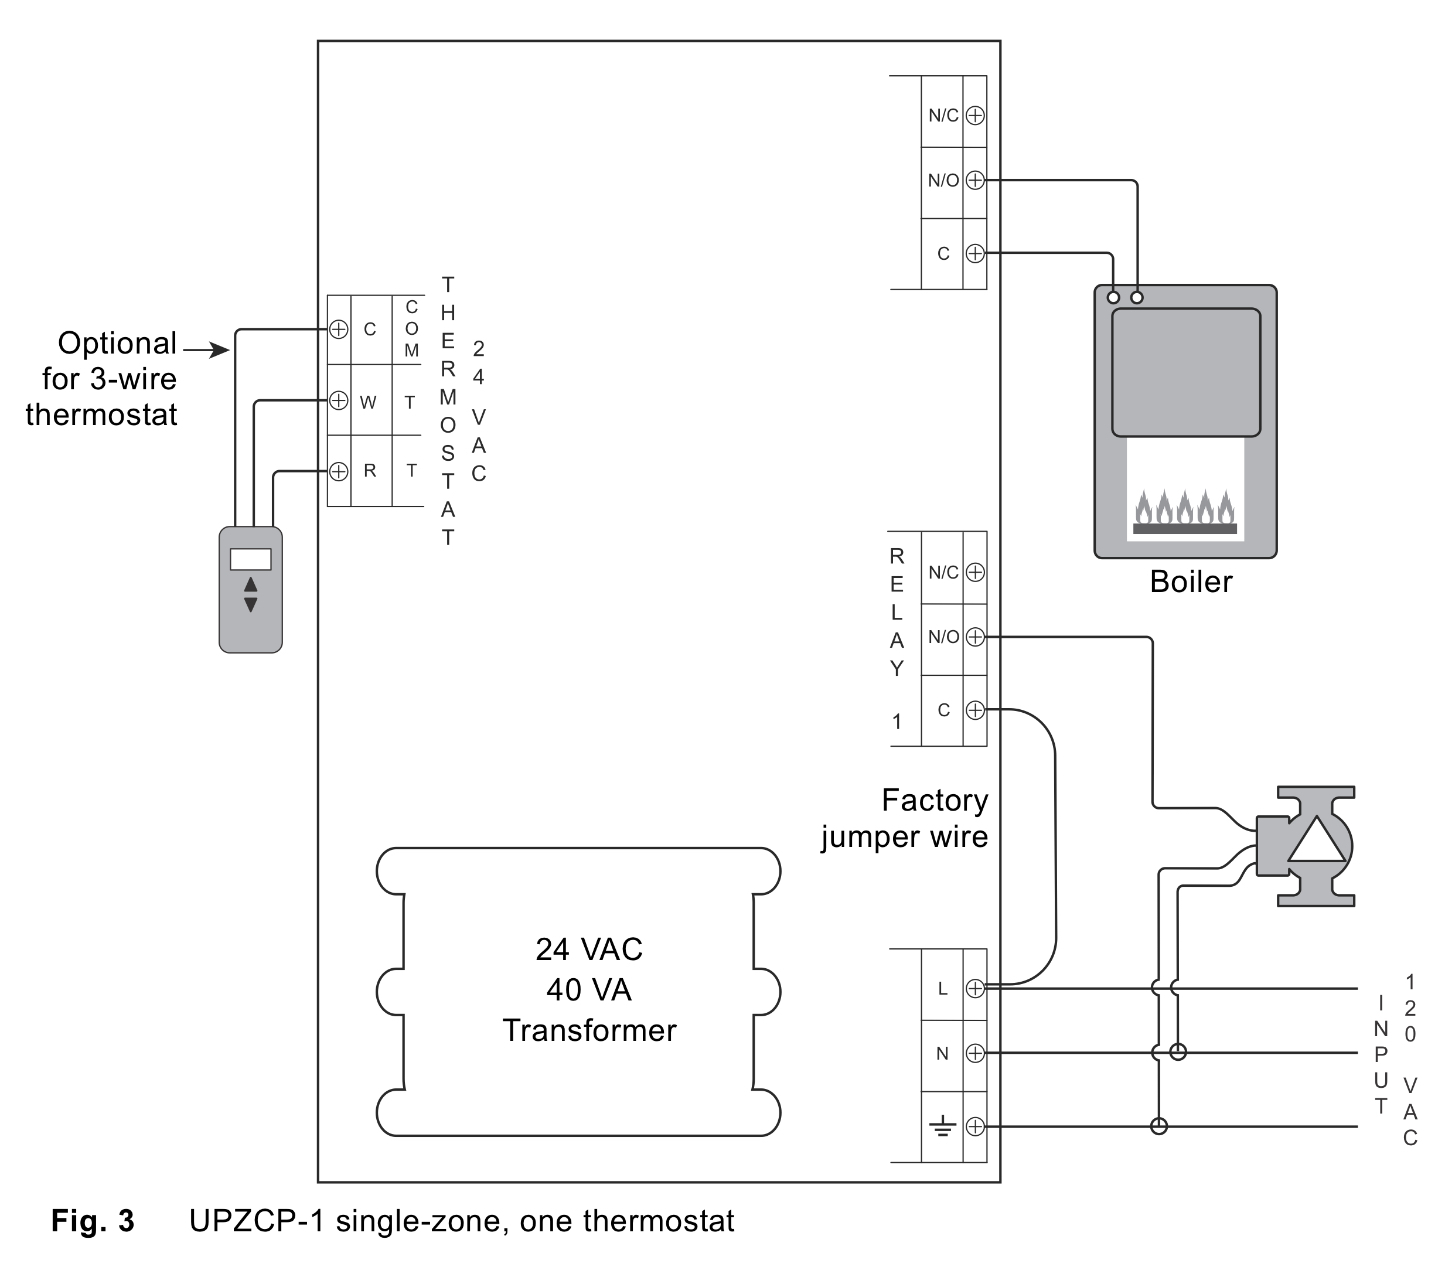 thermistor relay wiring diagram fujitsu ductless split how can i add additional circulator to existing